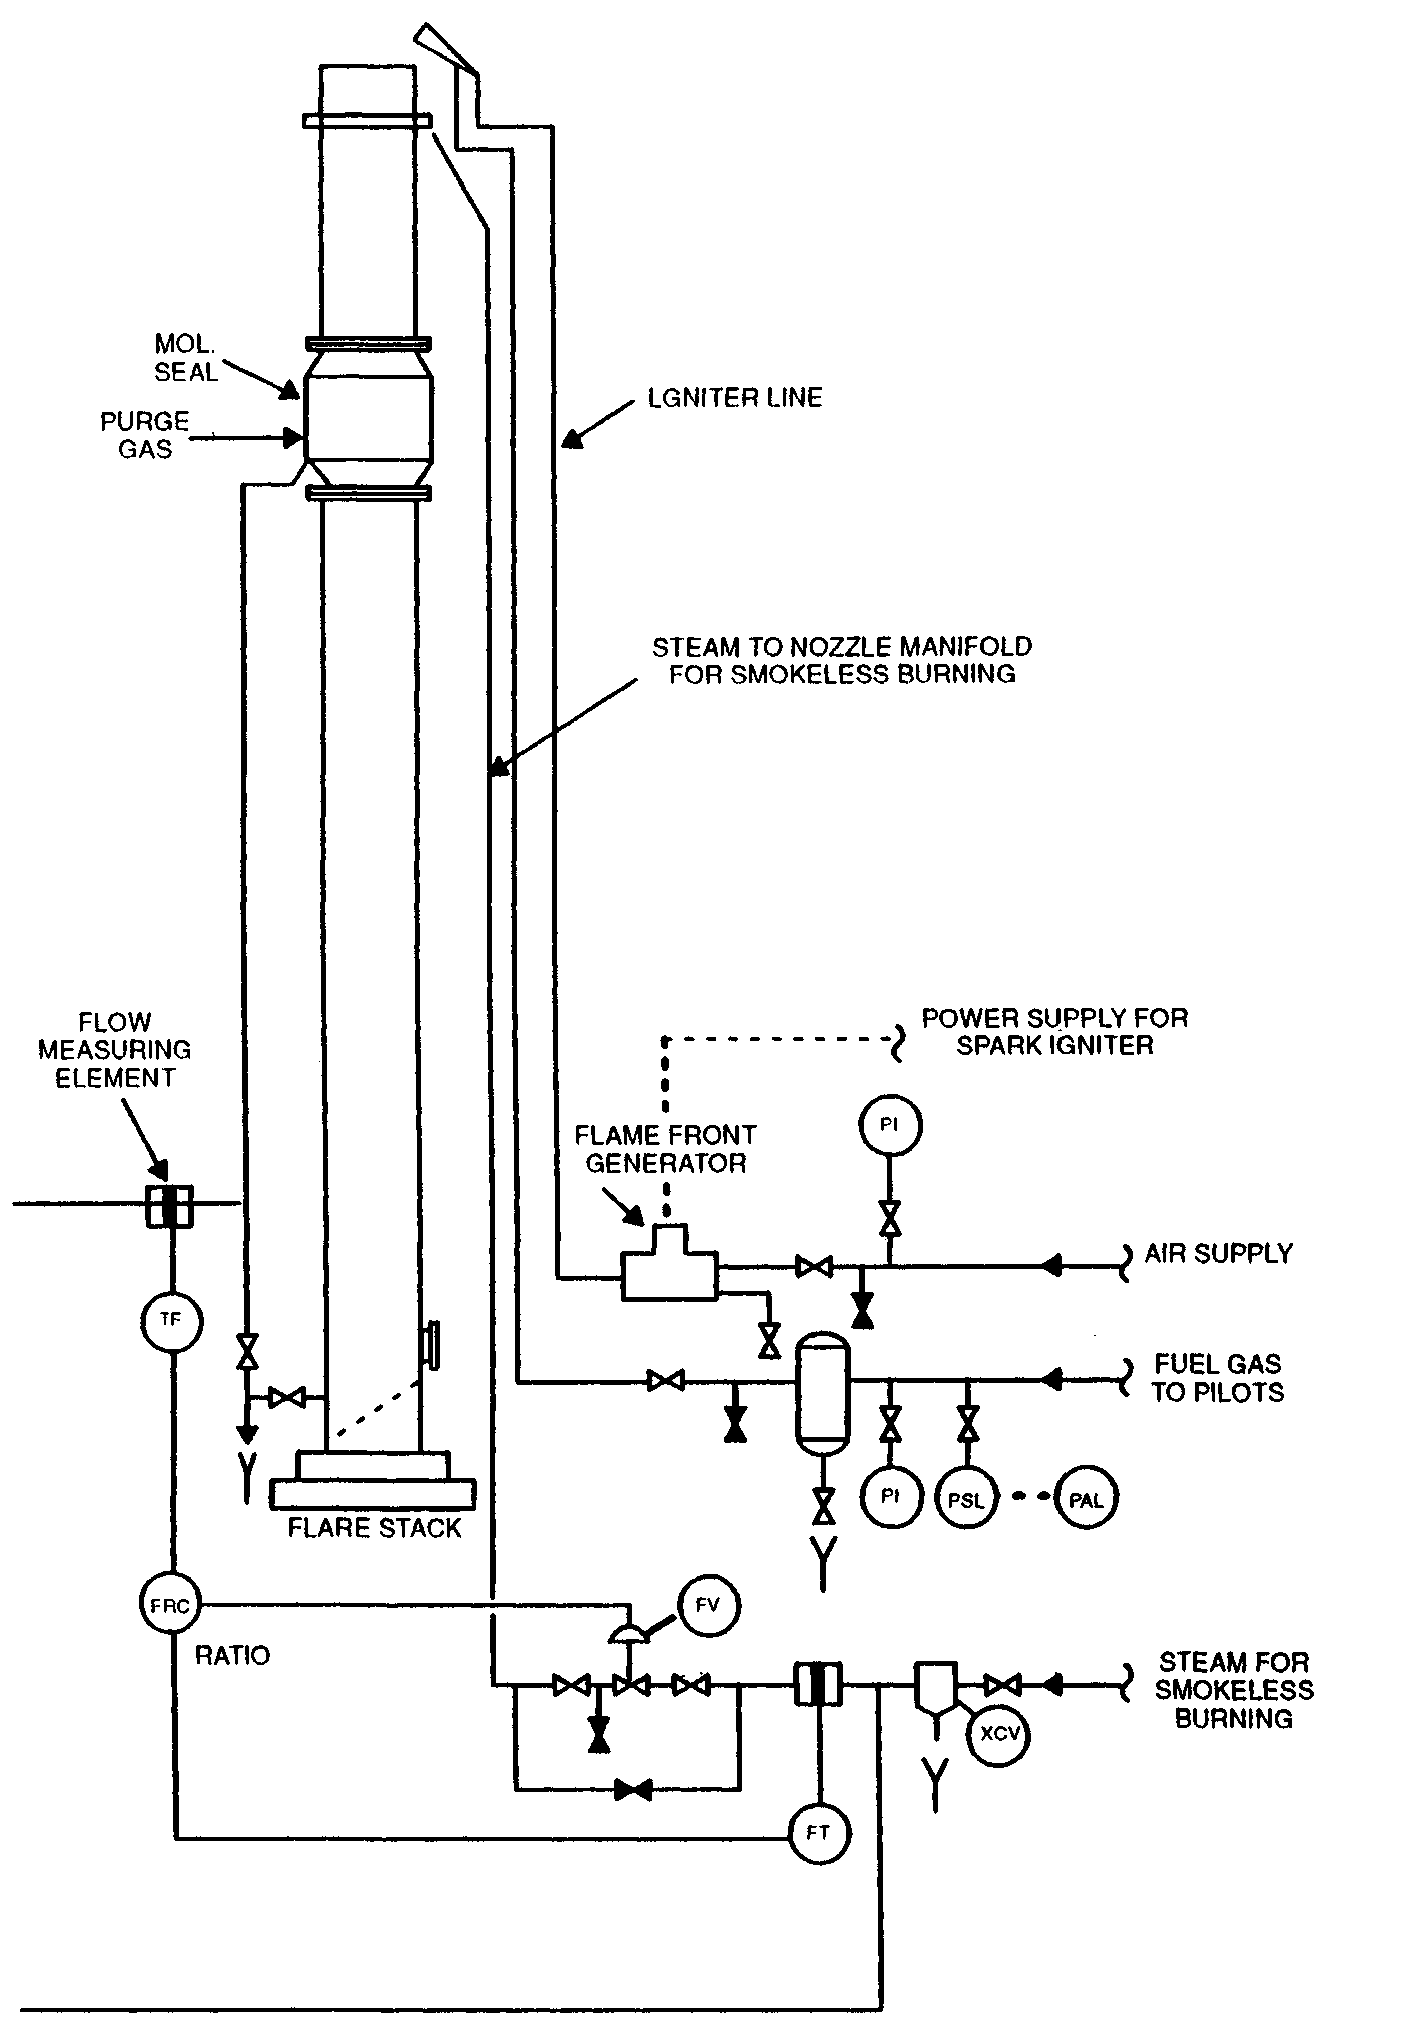 Pressure Relief Valves And Flares For The Process